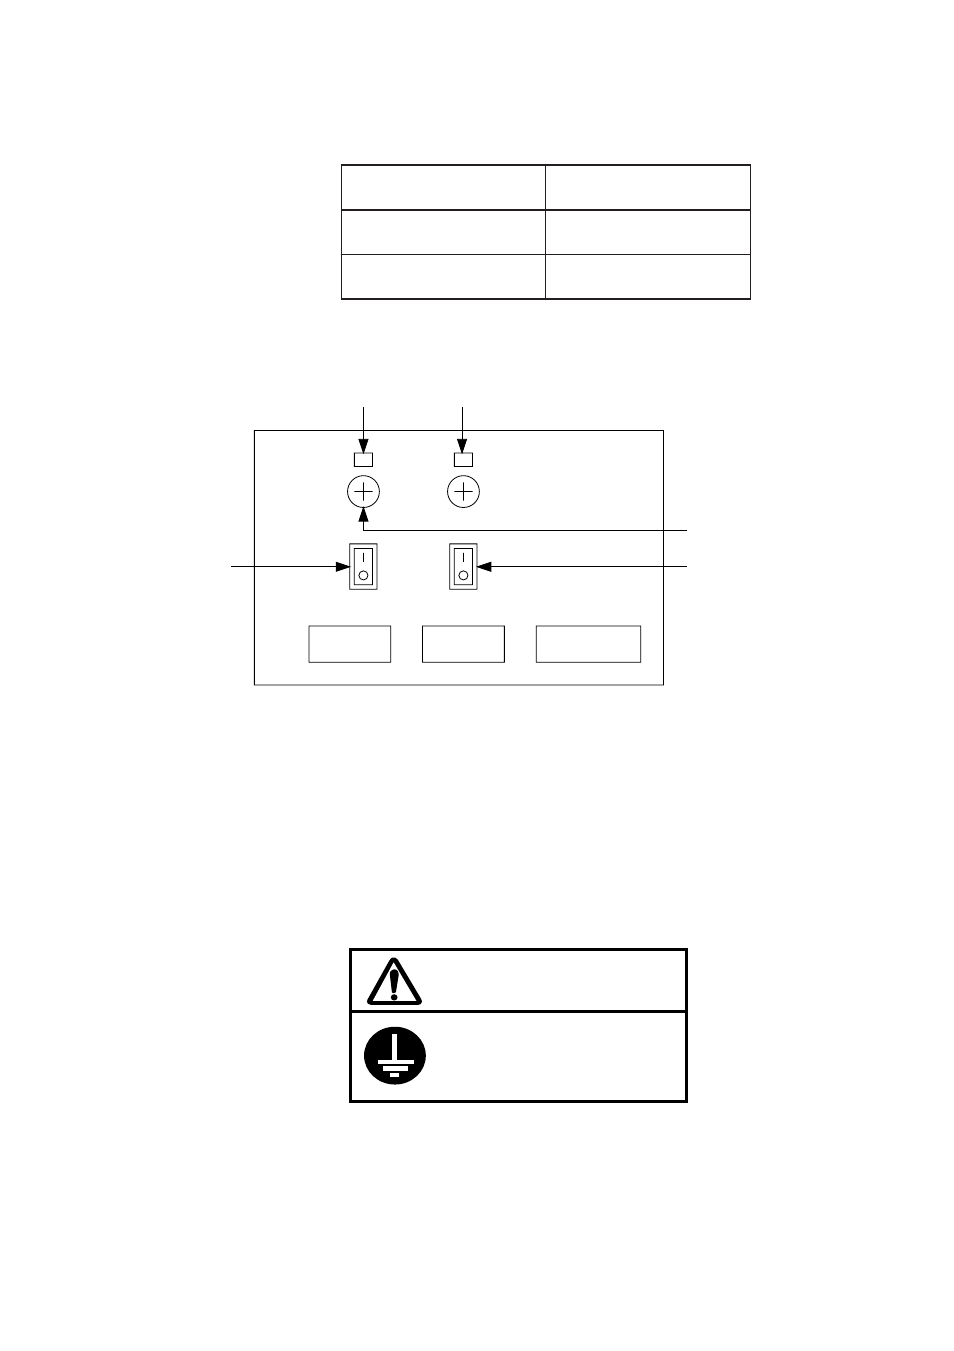 hight resolution of caution changing the power fuse ground furuno fm 8500 user manual page 21 46